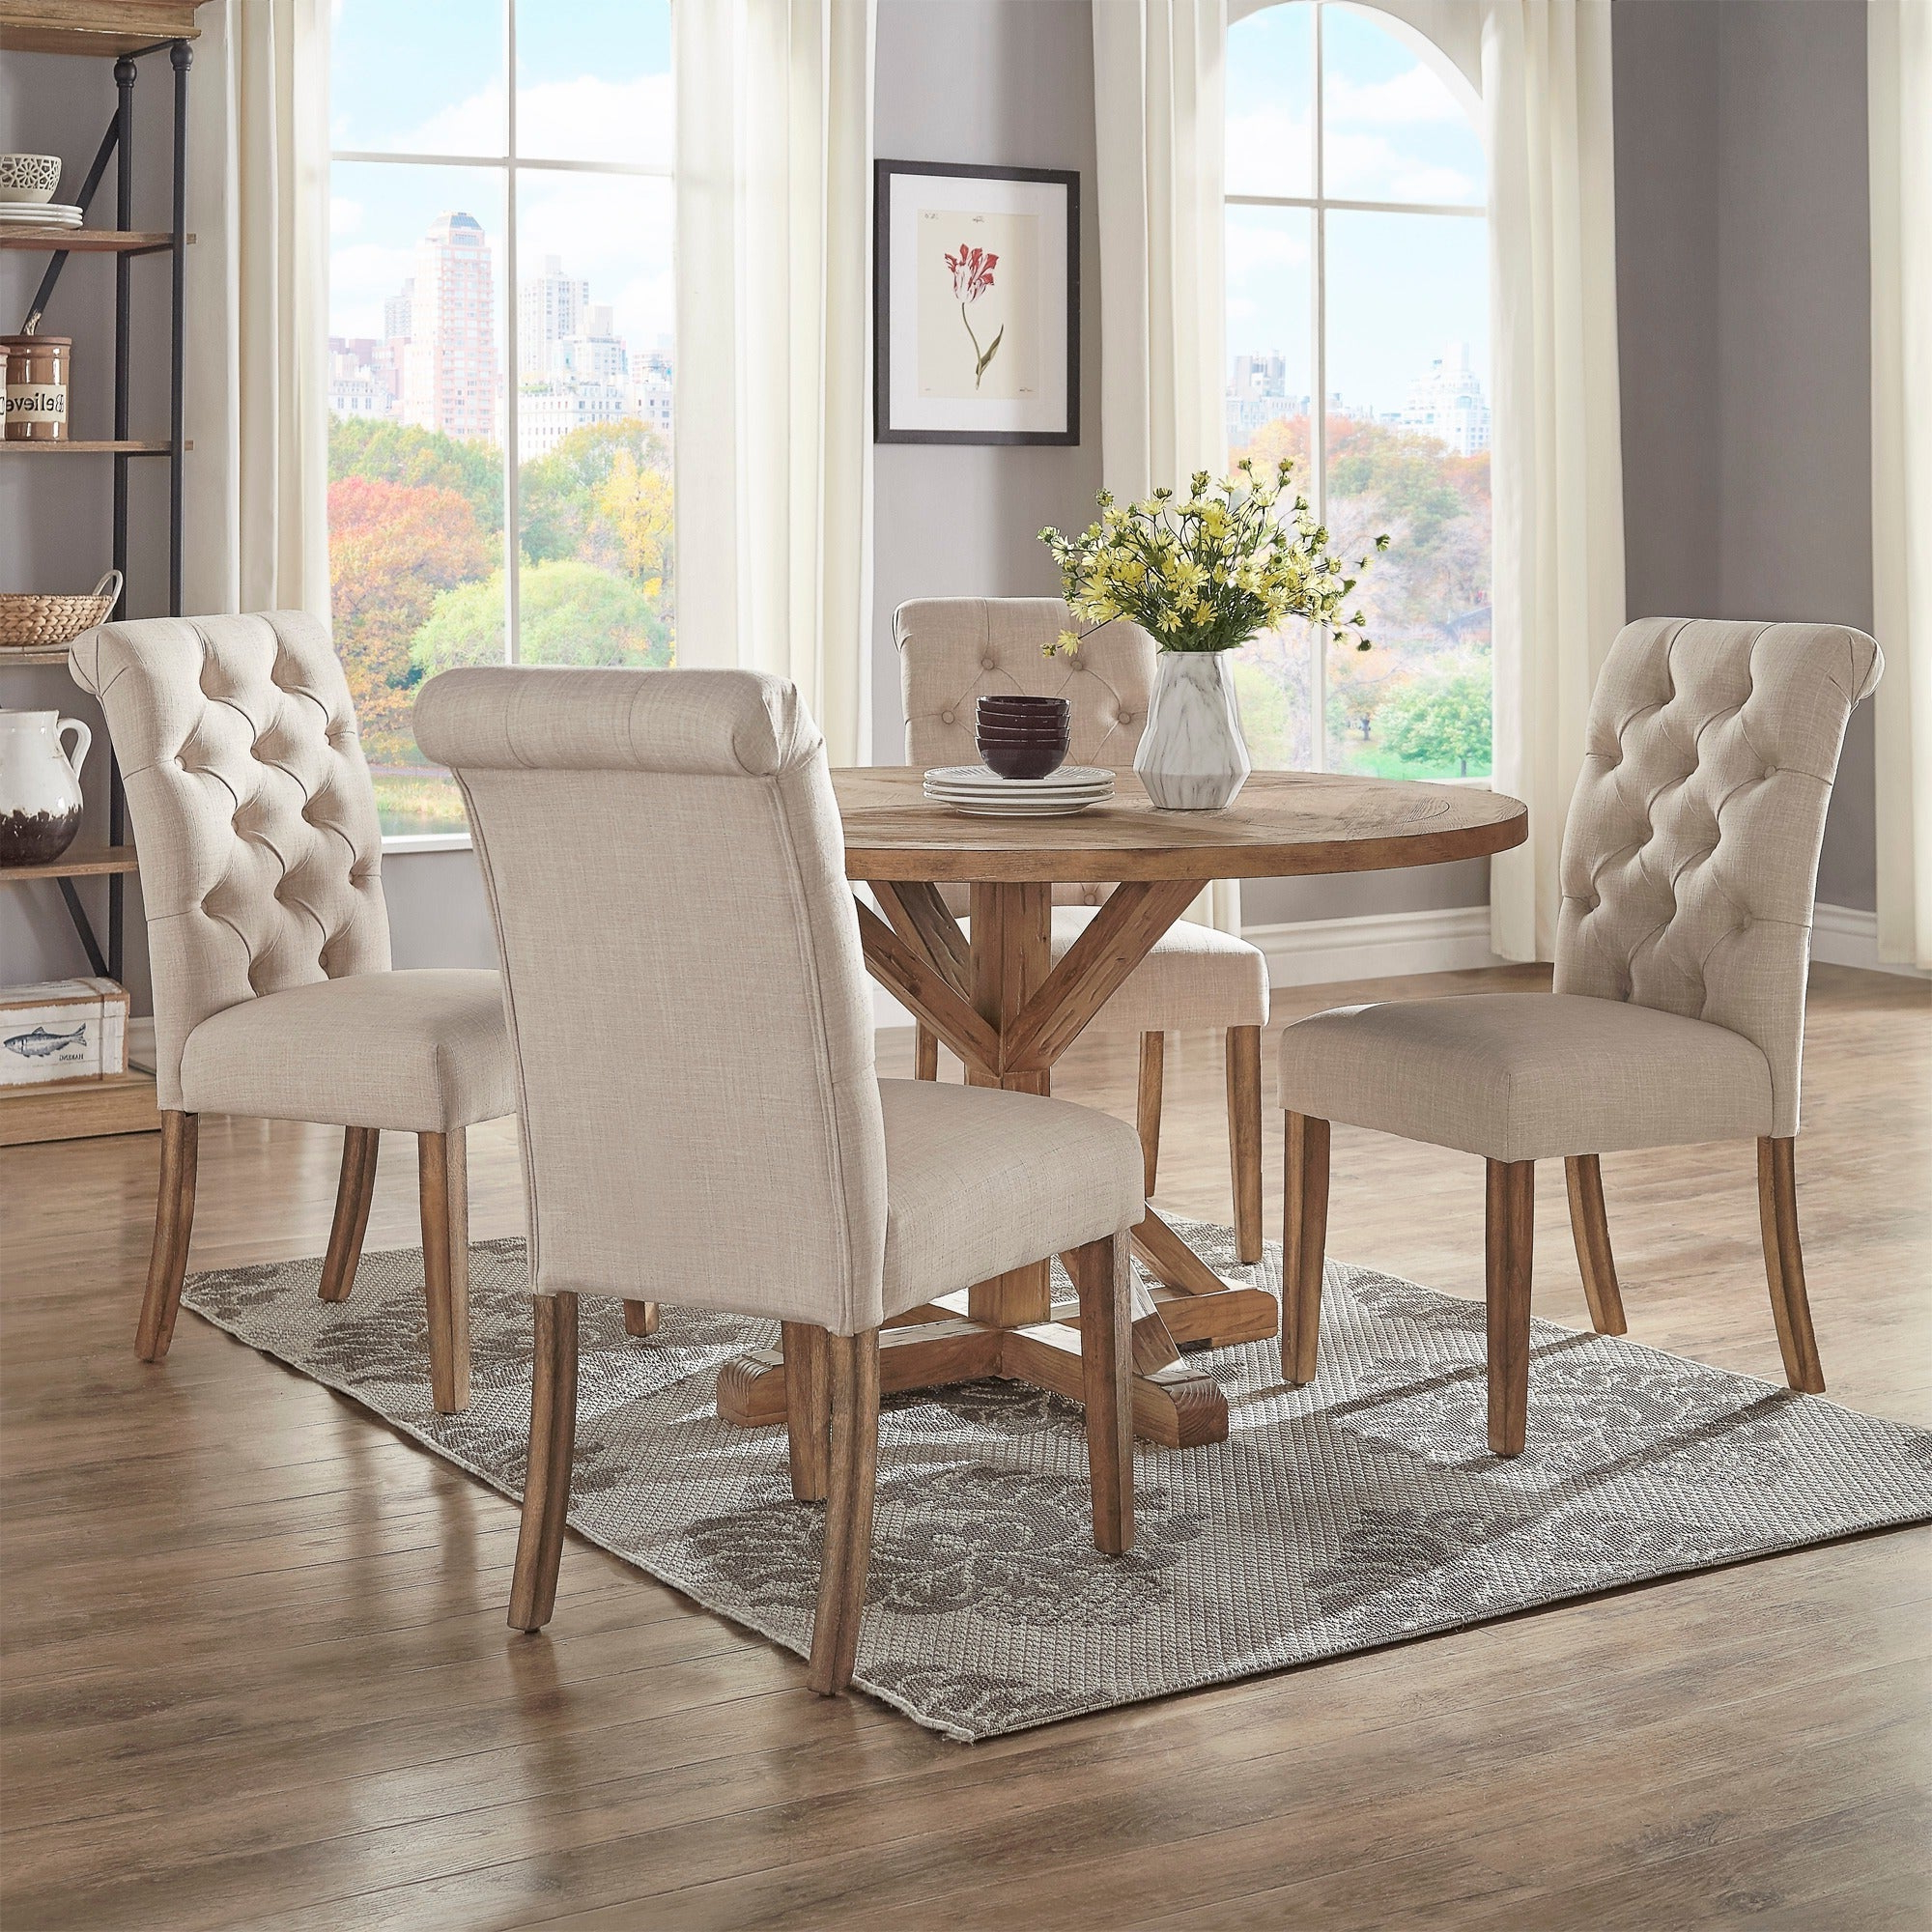 Best And Newest North Reading 5 Piece Dining Table Sets With Buy Kitchen & Dining Room Tables Online At Overstock (View 6 of 25)